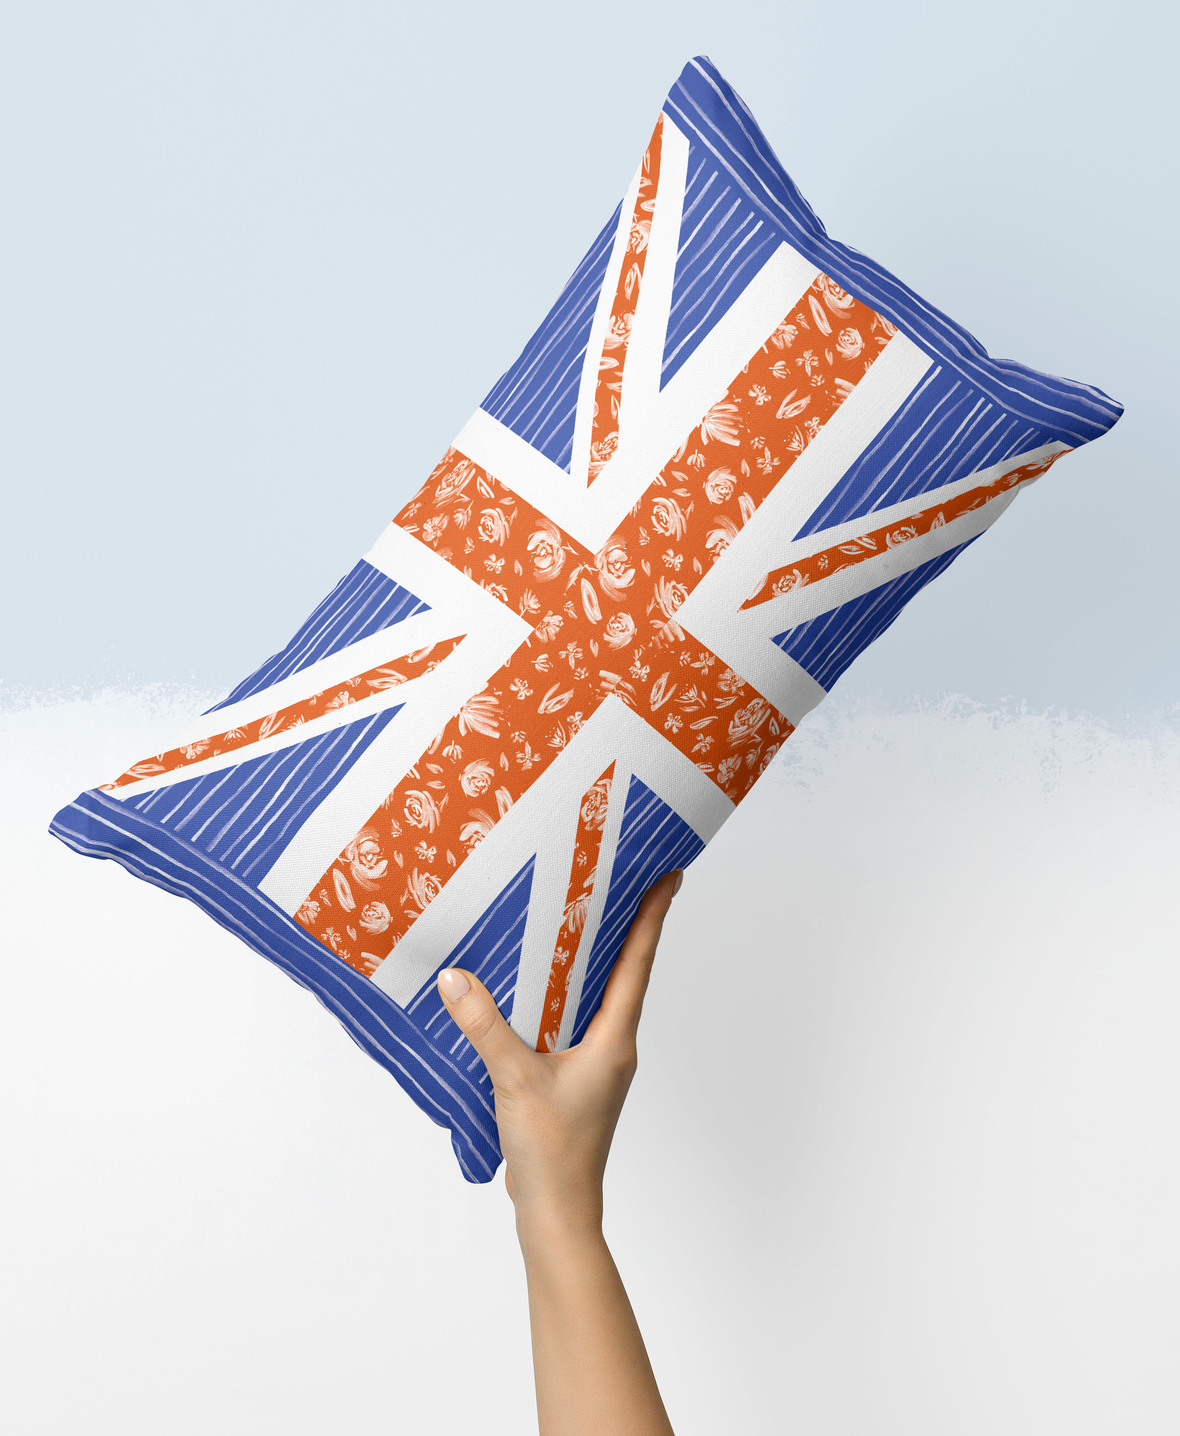 Union Jack Mollie Sparkles has similar